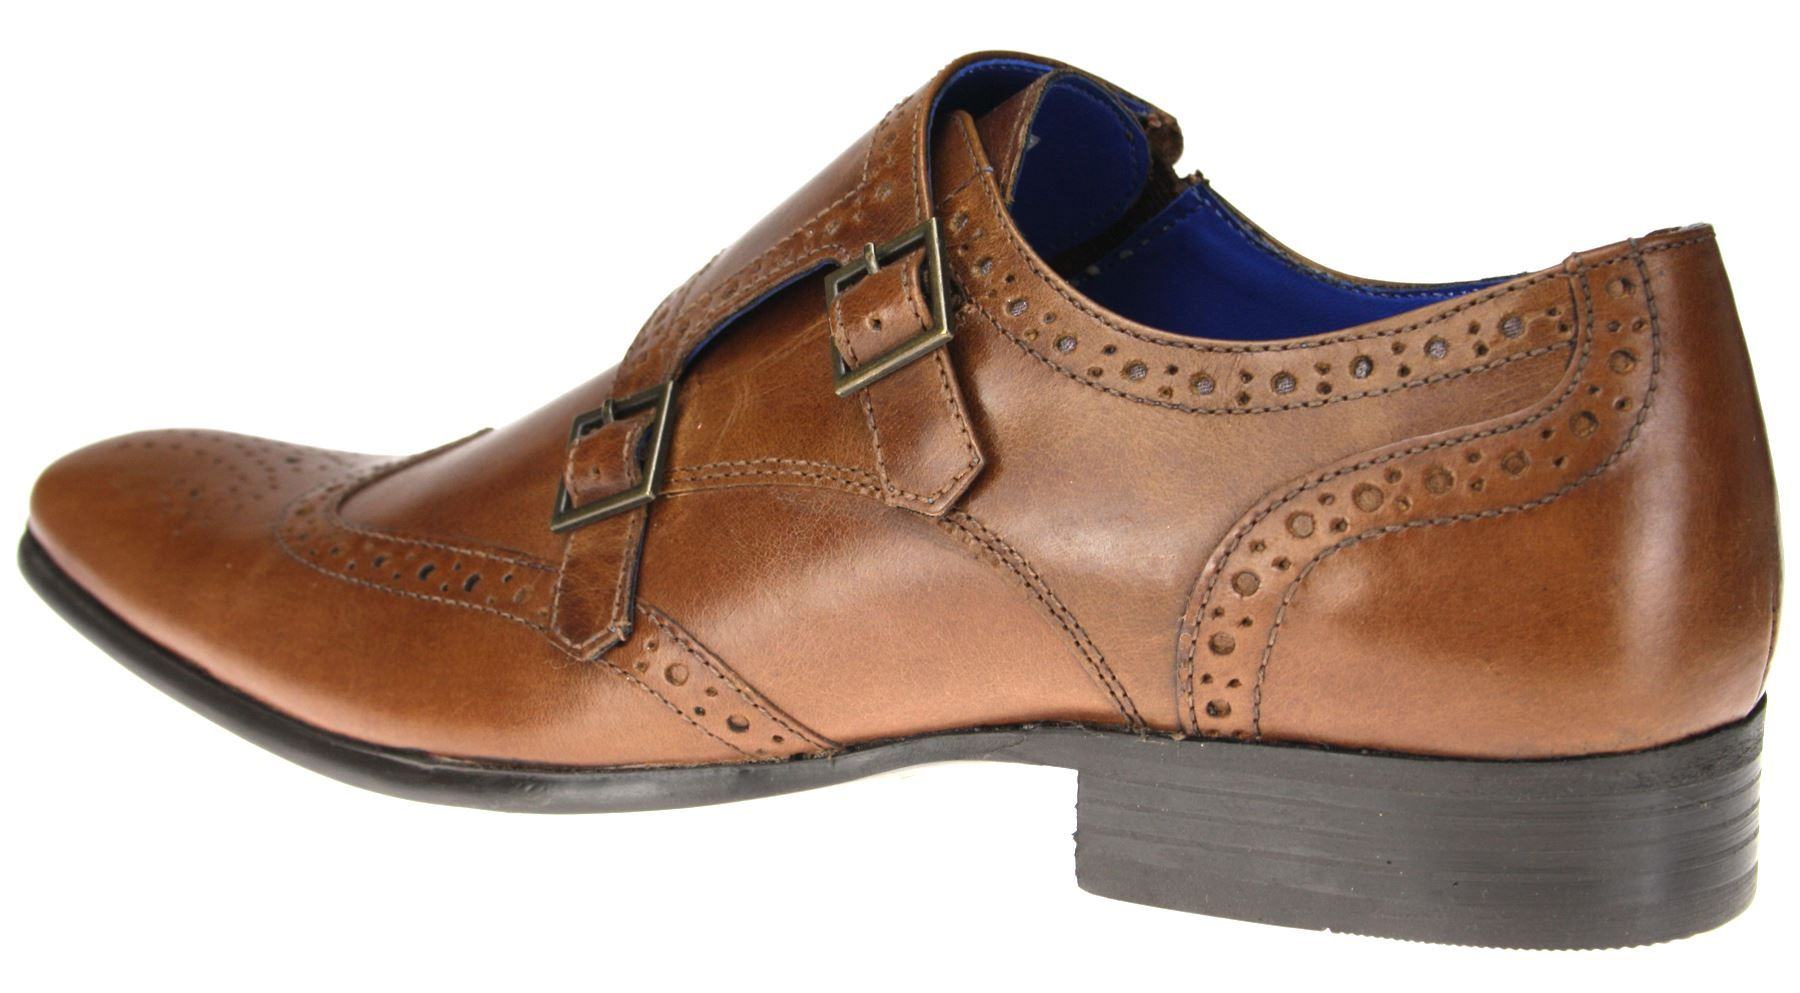 Brogue double monk buckle formal shoes